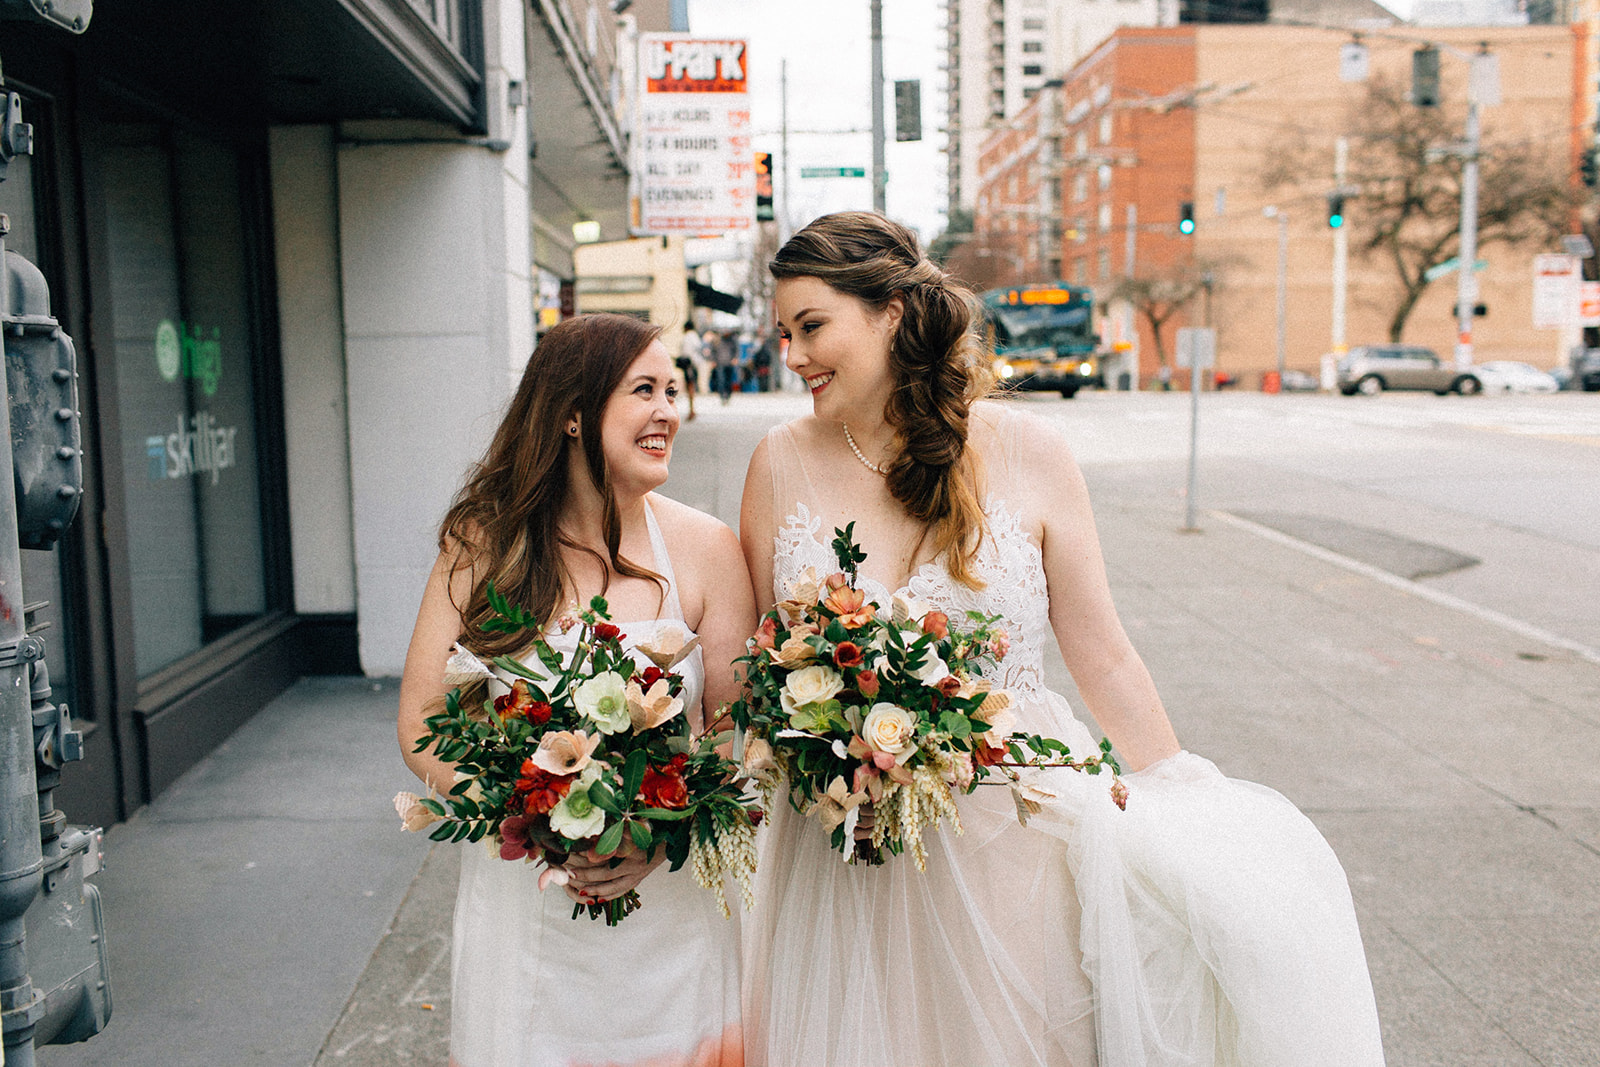 andrea and leigh walking down sidewalk smiling at each other in wedding dresses with floral bouquets after their wedding seattle washington fuck yeah weddings kendall shea